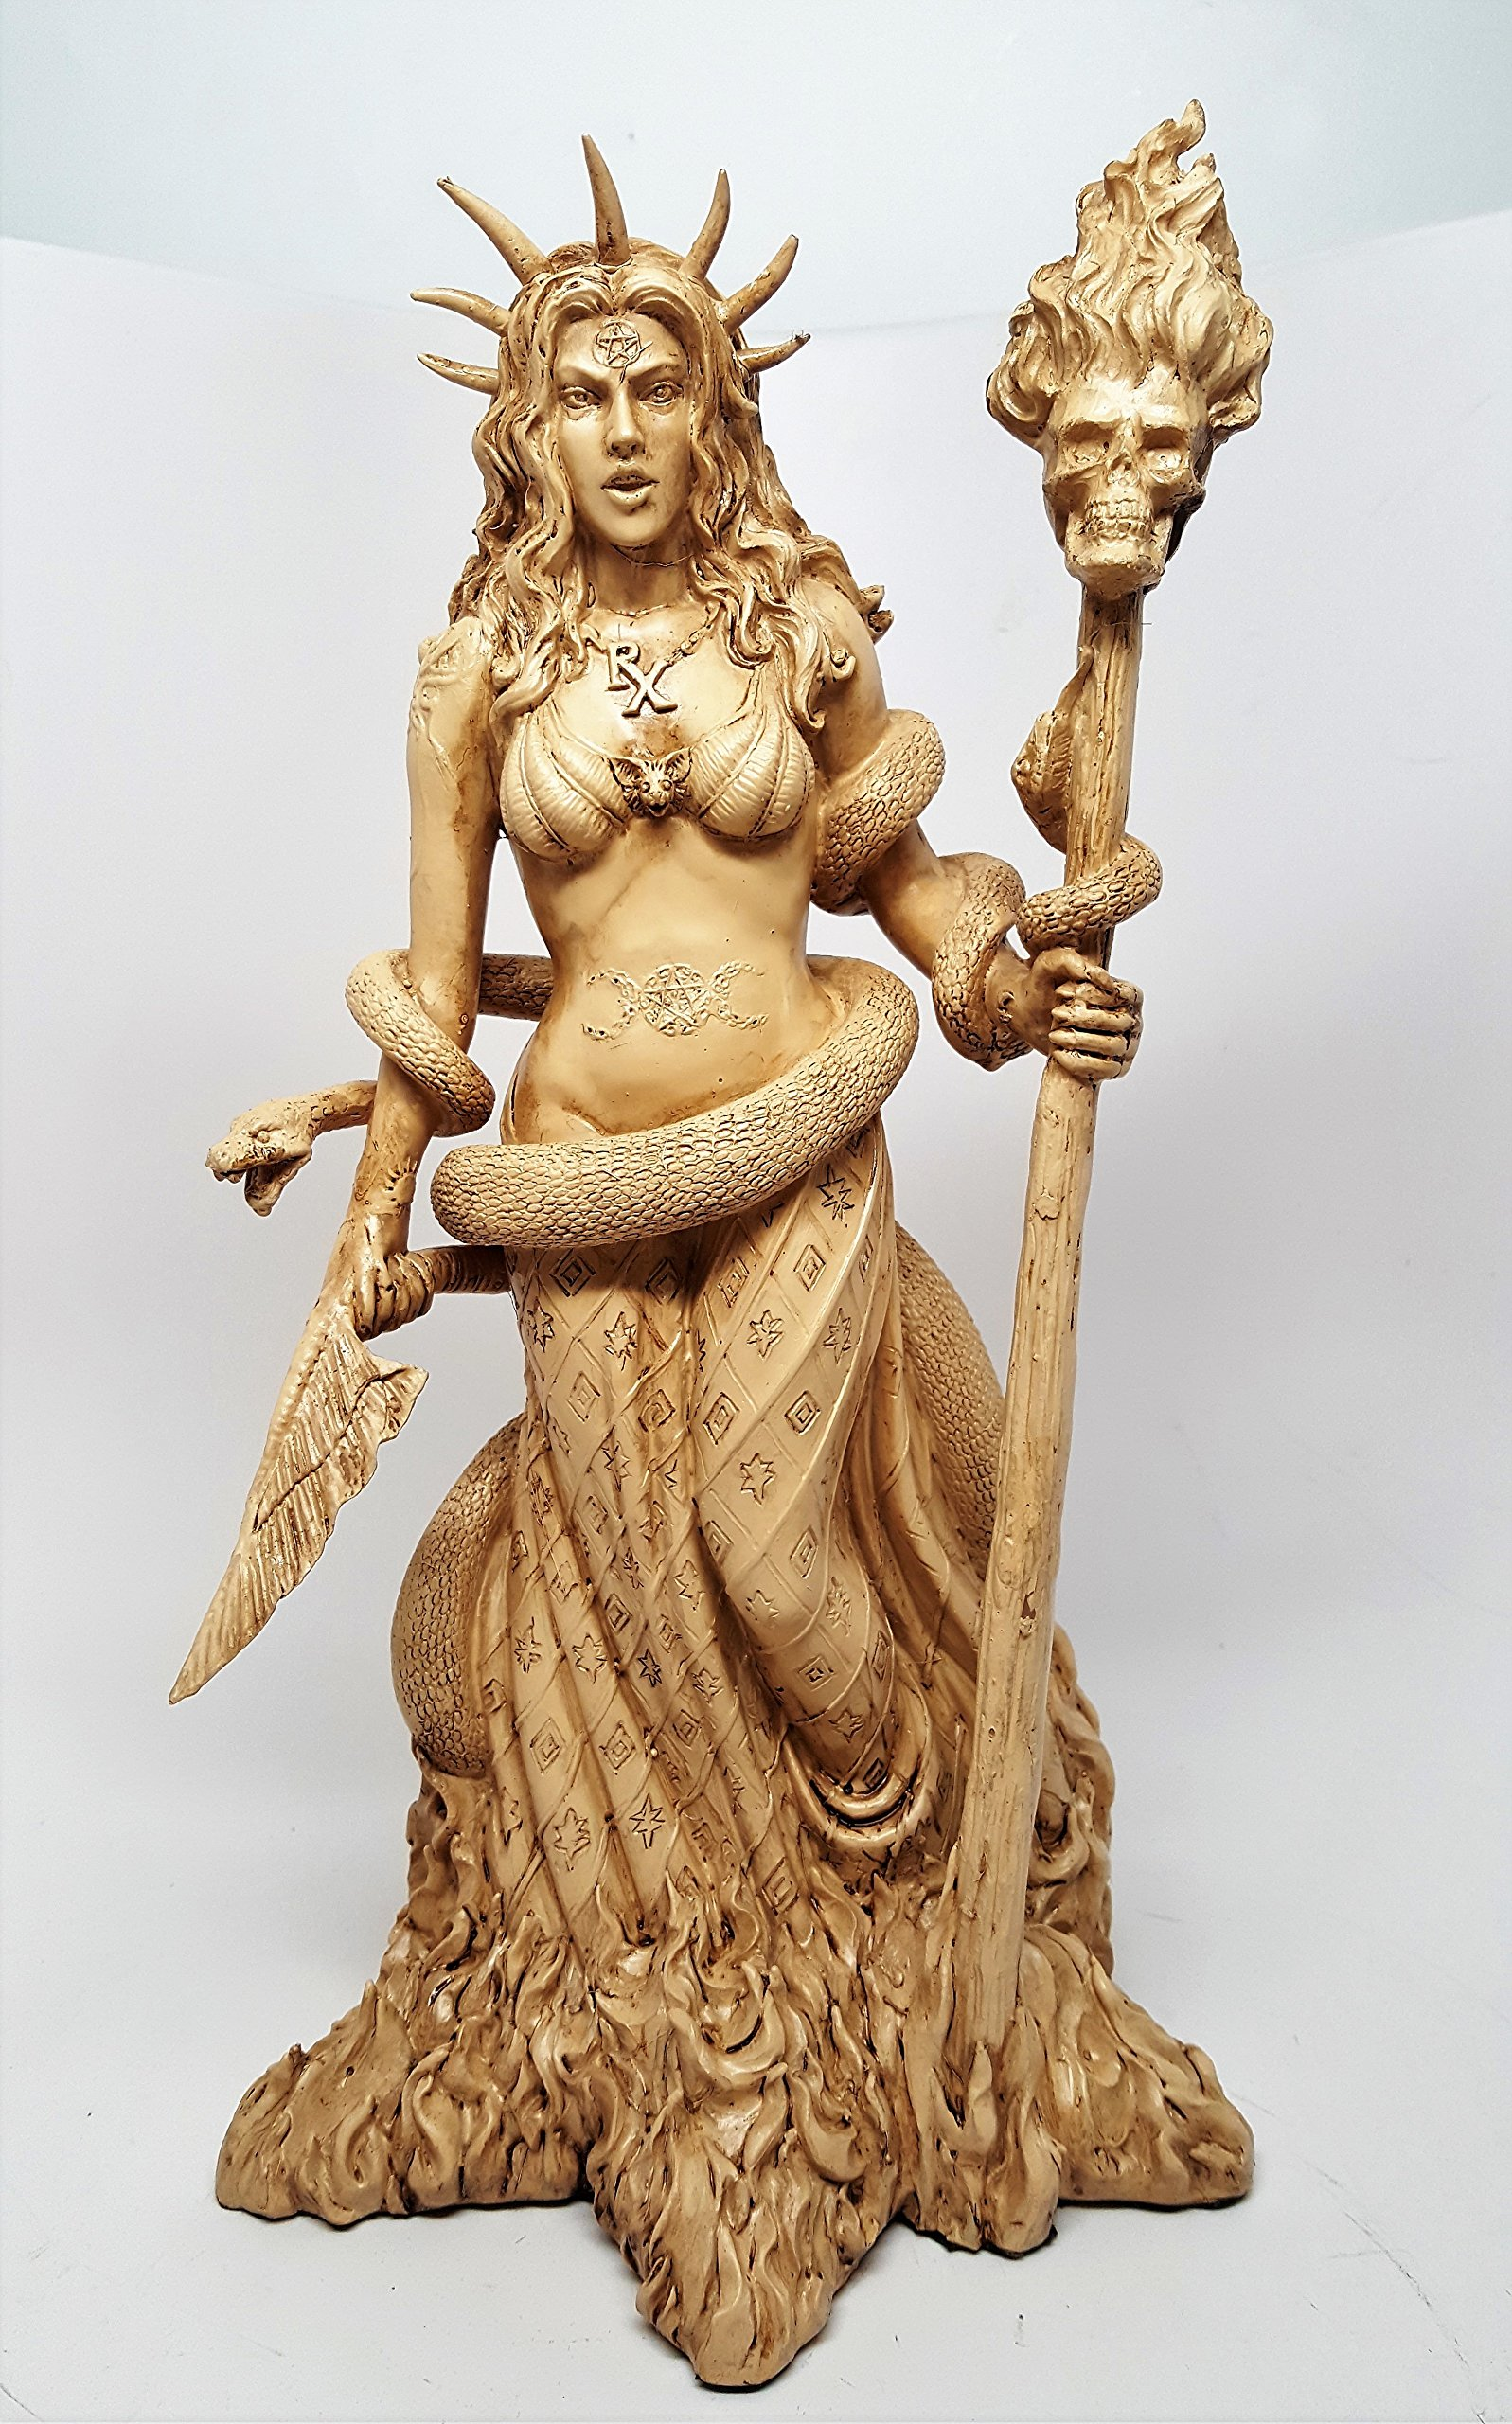 Greek Goddess White Sorceress Witchcraft Hecate Figurine Hekate Necromancy Deity Magic Powerful Pagan Witch Statue by Pacific Trading